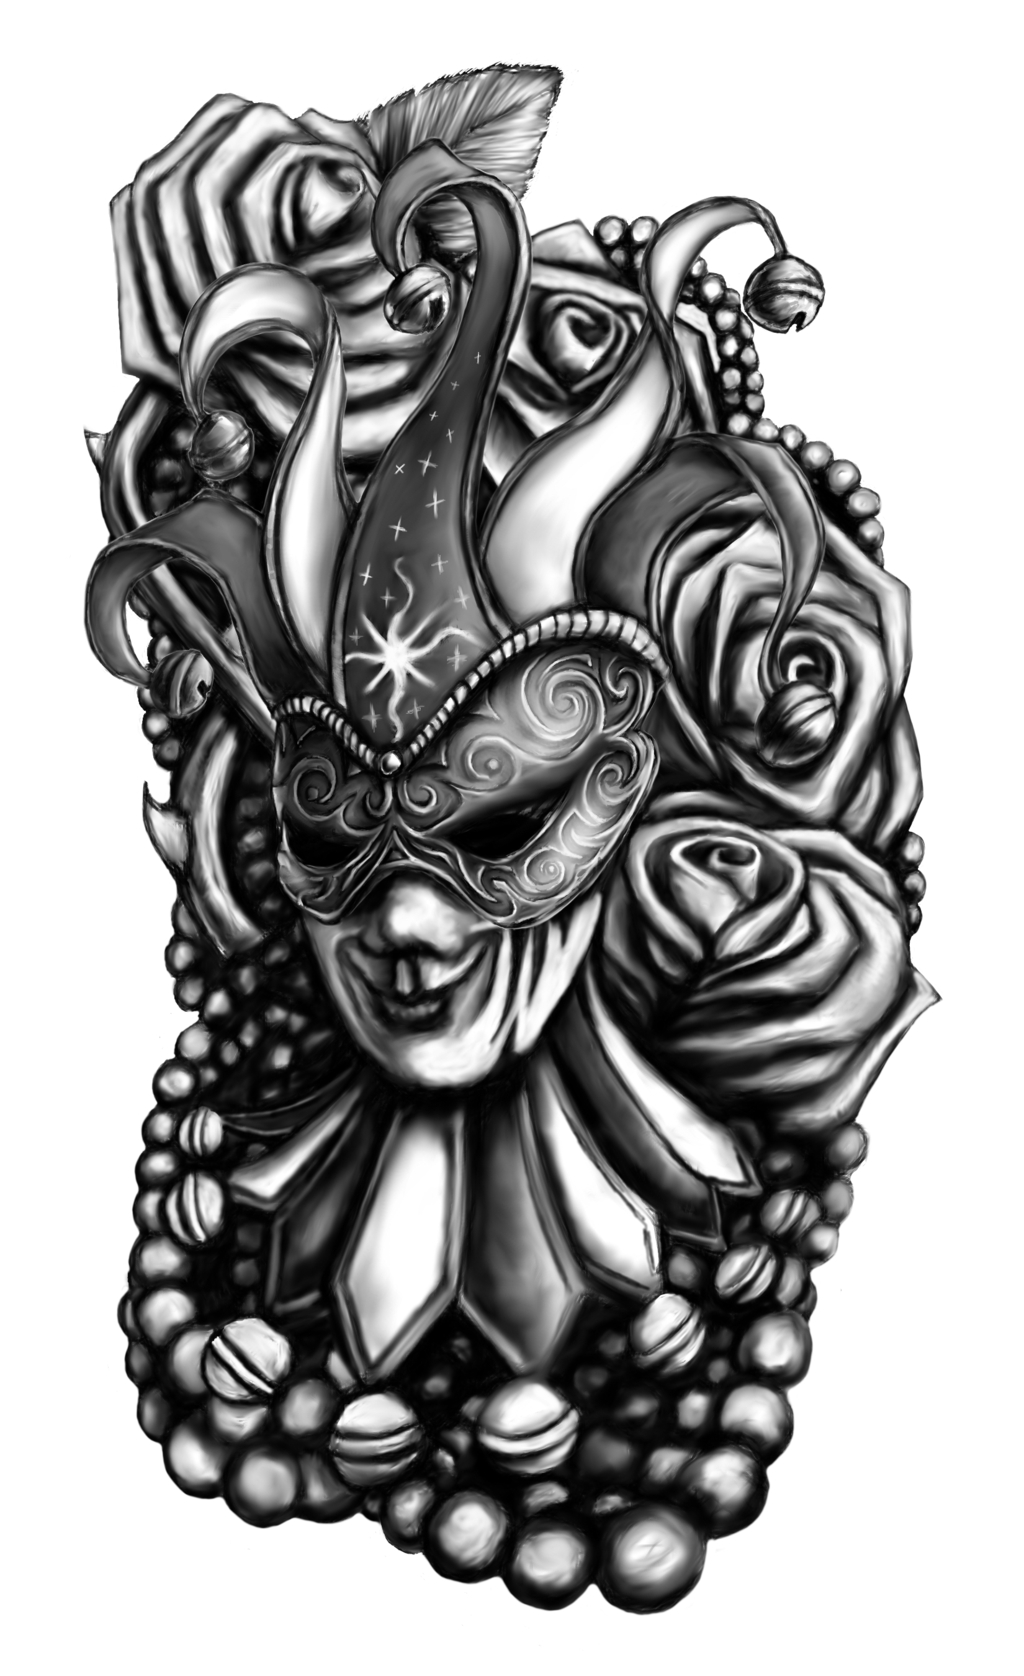 10 Most Recommended Black And Grey Tattoo Ideas black and grey mardi gras with roses tattoo designlewis brown